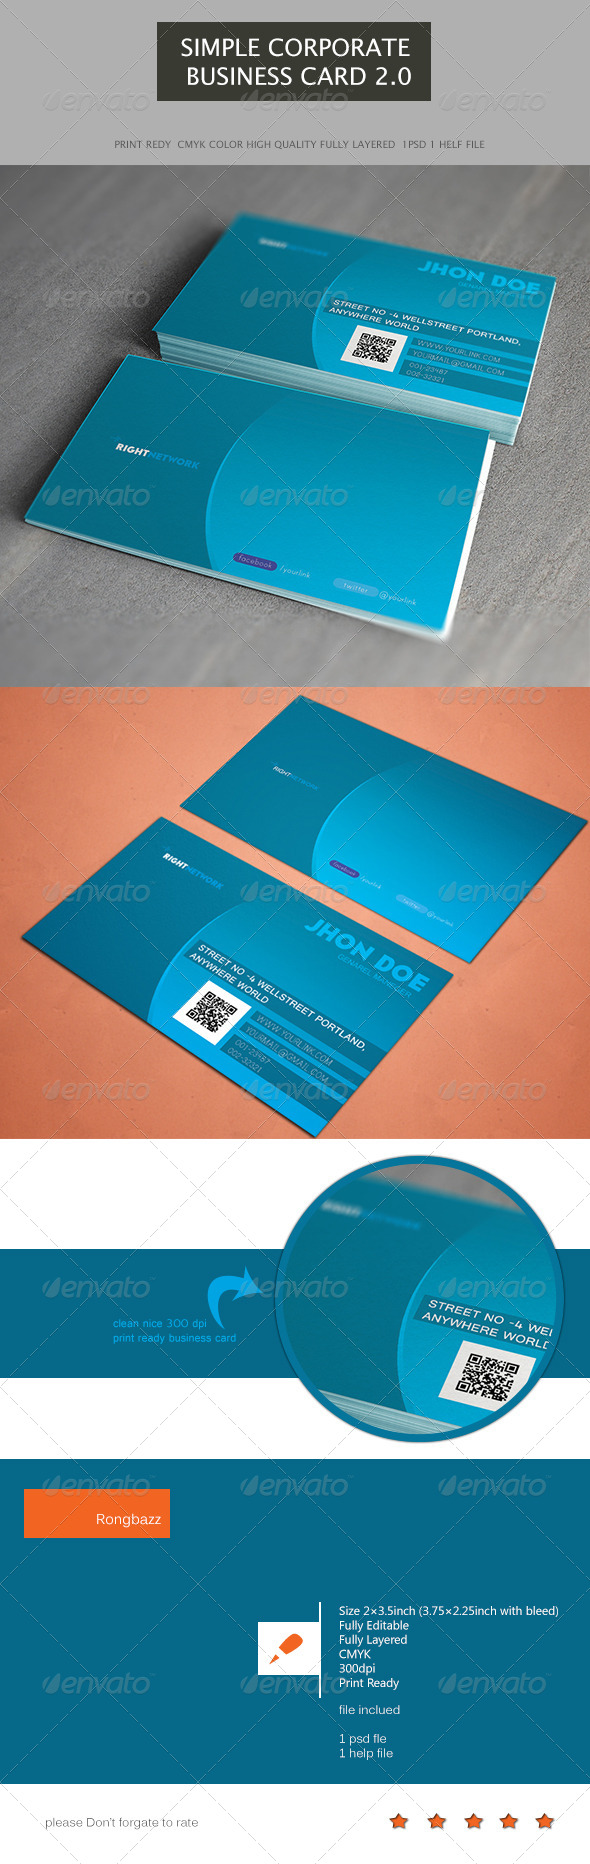 Simple Corporate Business Card 2.0 - Corporate Business Cards